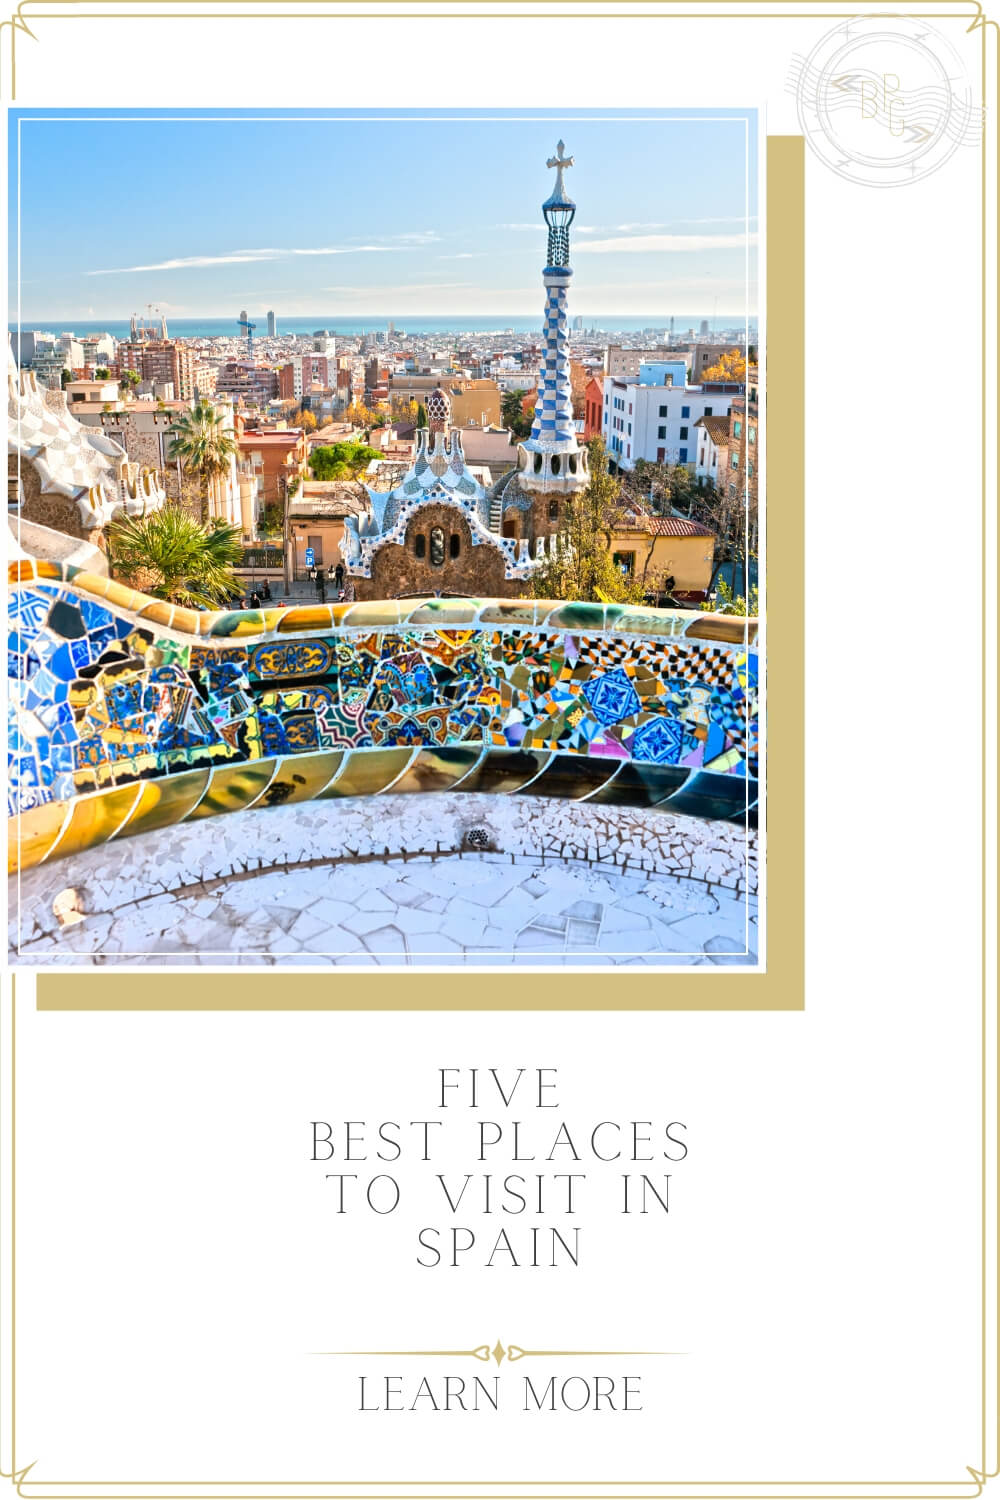 5 Best Places to visit in Spain - By Black Platinum Gold